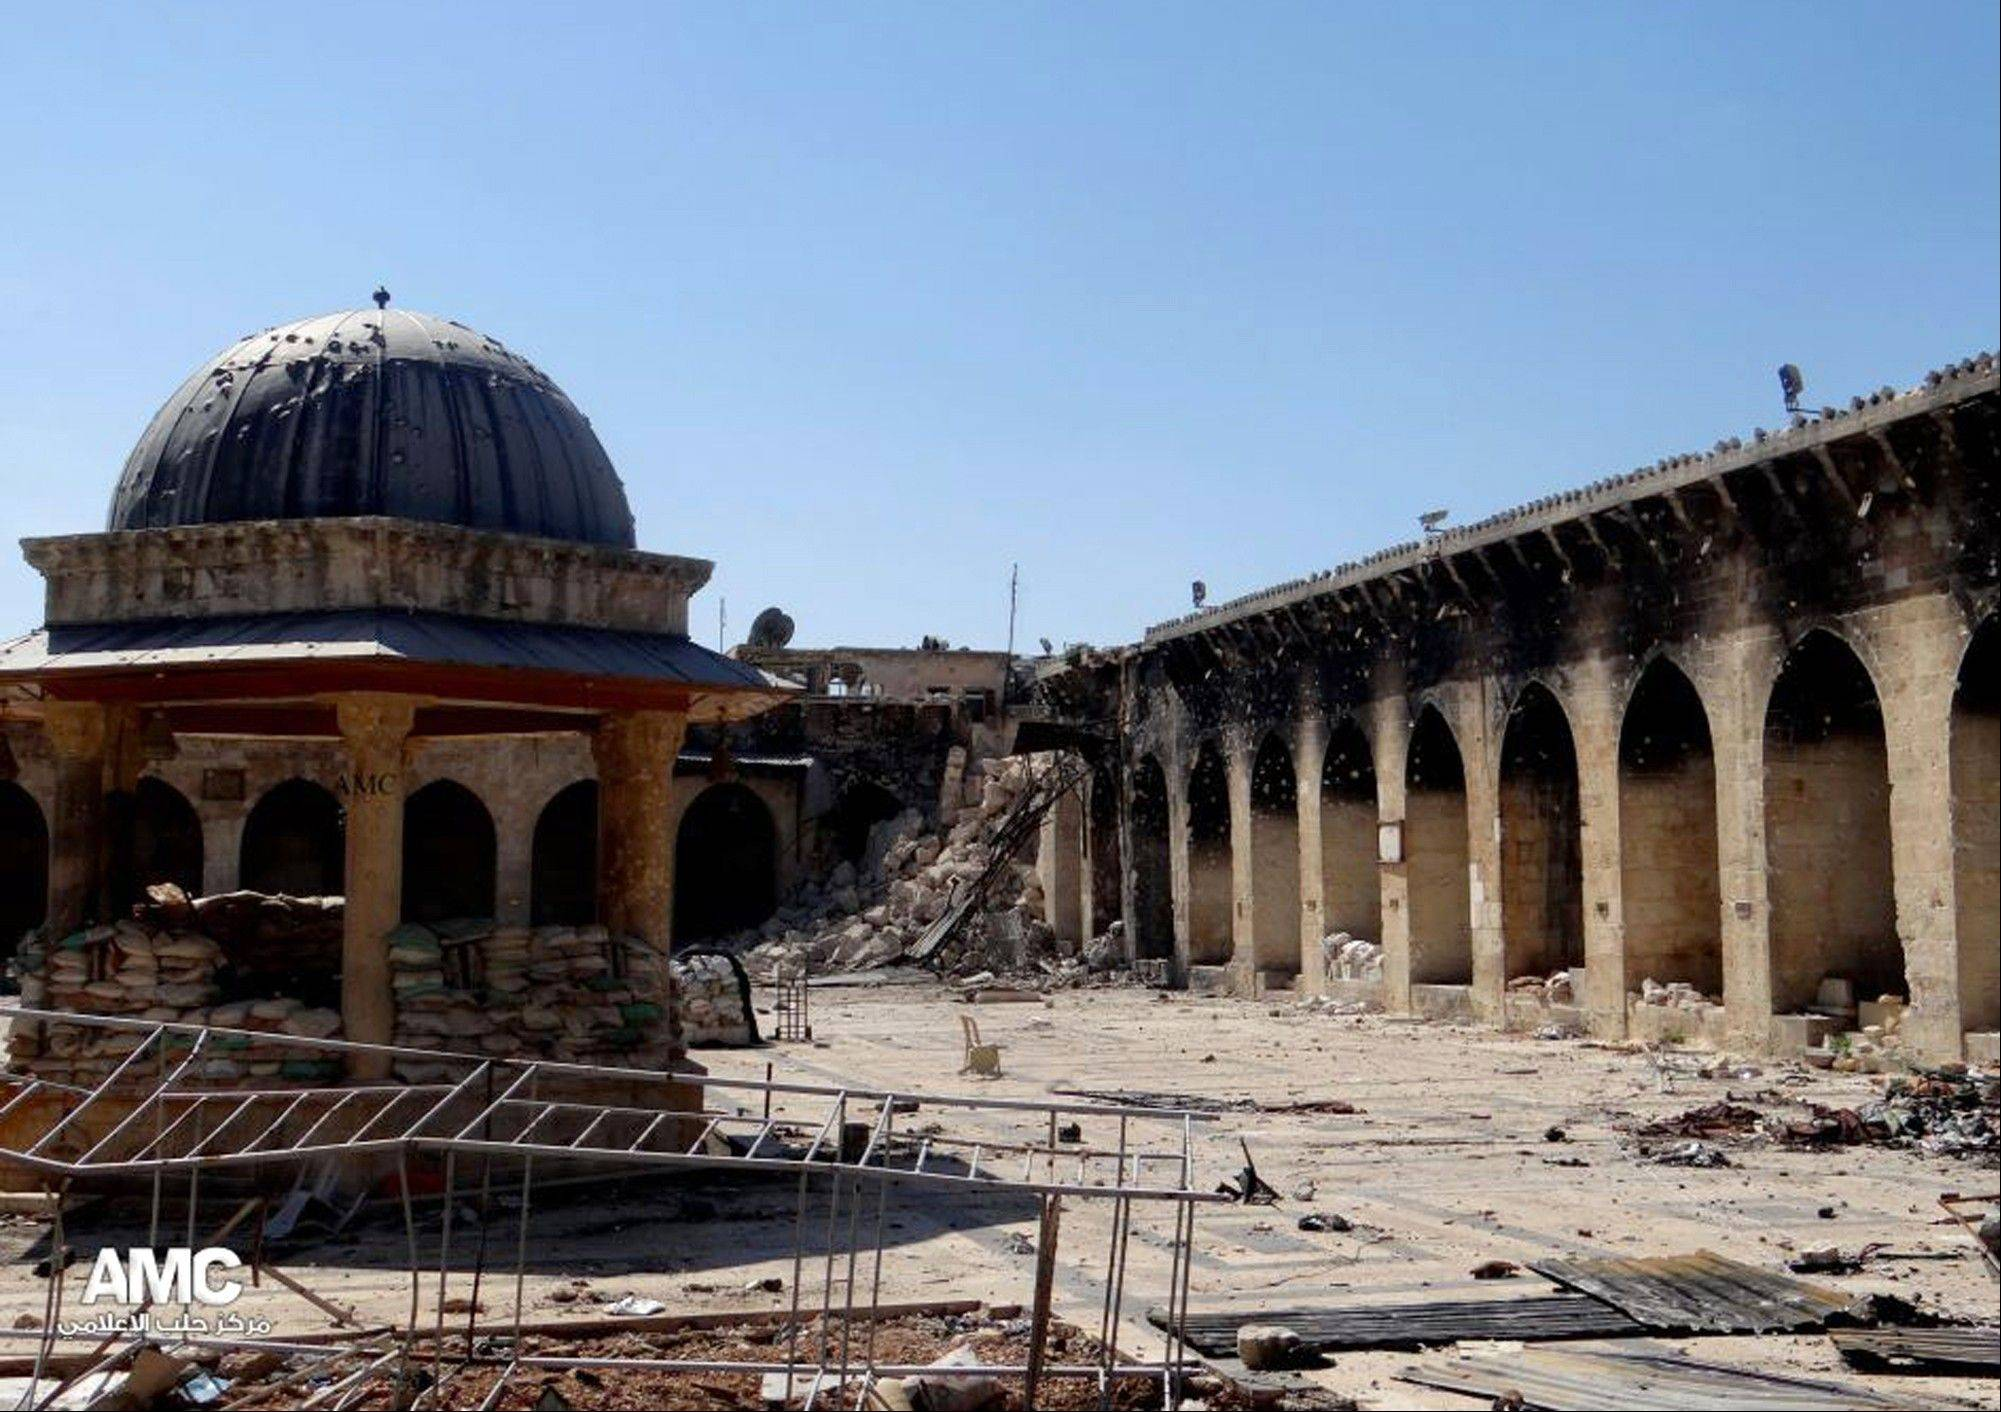 The damaged famed 12th century Umayyad mosque without the minaret, background right corner, which was destroyed by the shelling, in the northern city of Aleppo, Syria, Wednesday April 24, 2013. The minaret of a famed 12th century Sunni mosque in the northern Syrian city of Aleppo was destroyed Wednesday, leaving the once-soaring stone tower a pile of rubble and twisted metal scattered in the tiled courtyard.